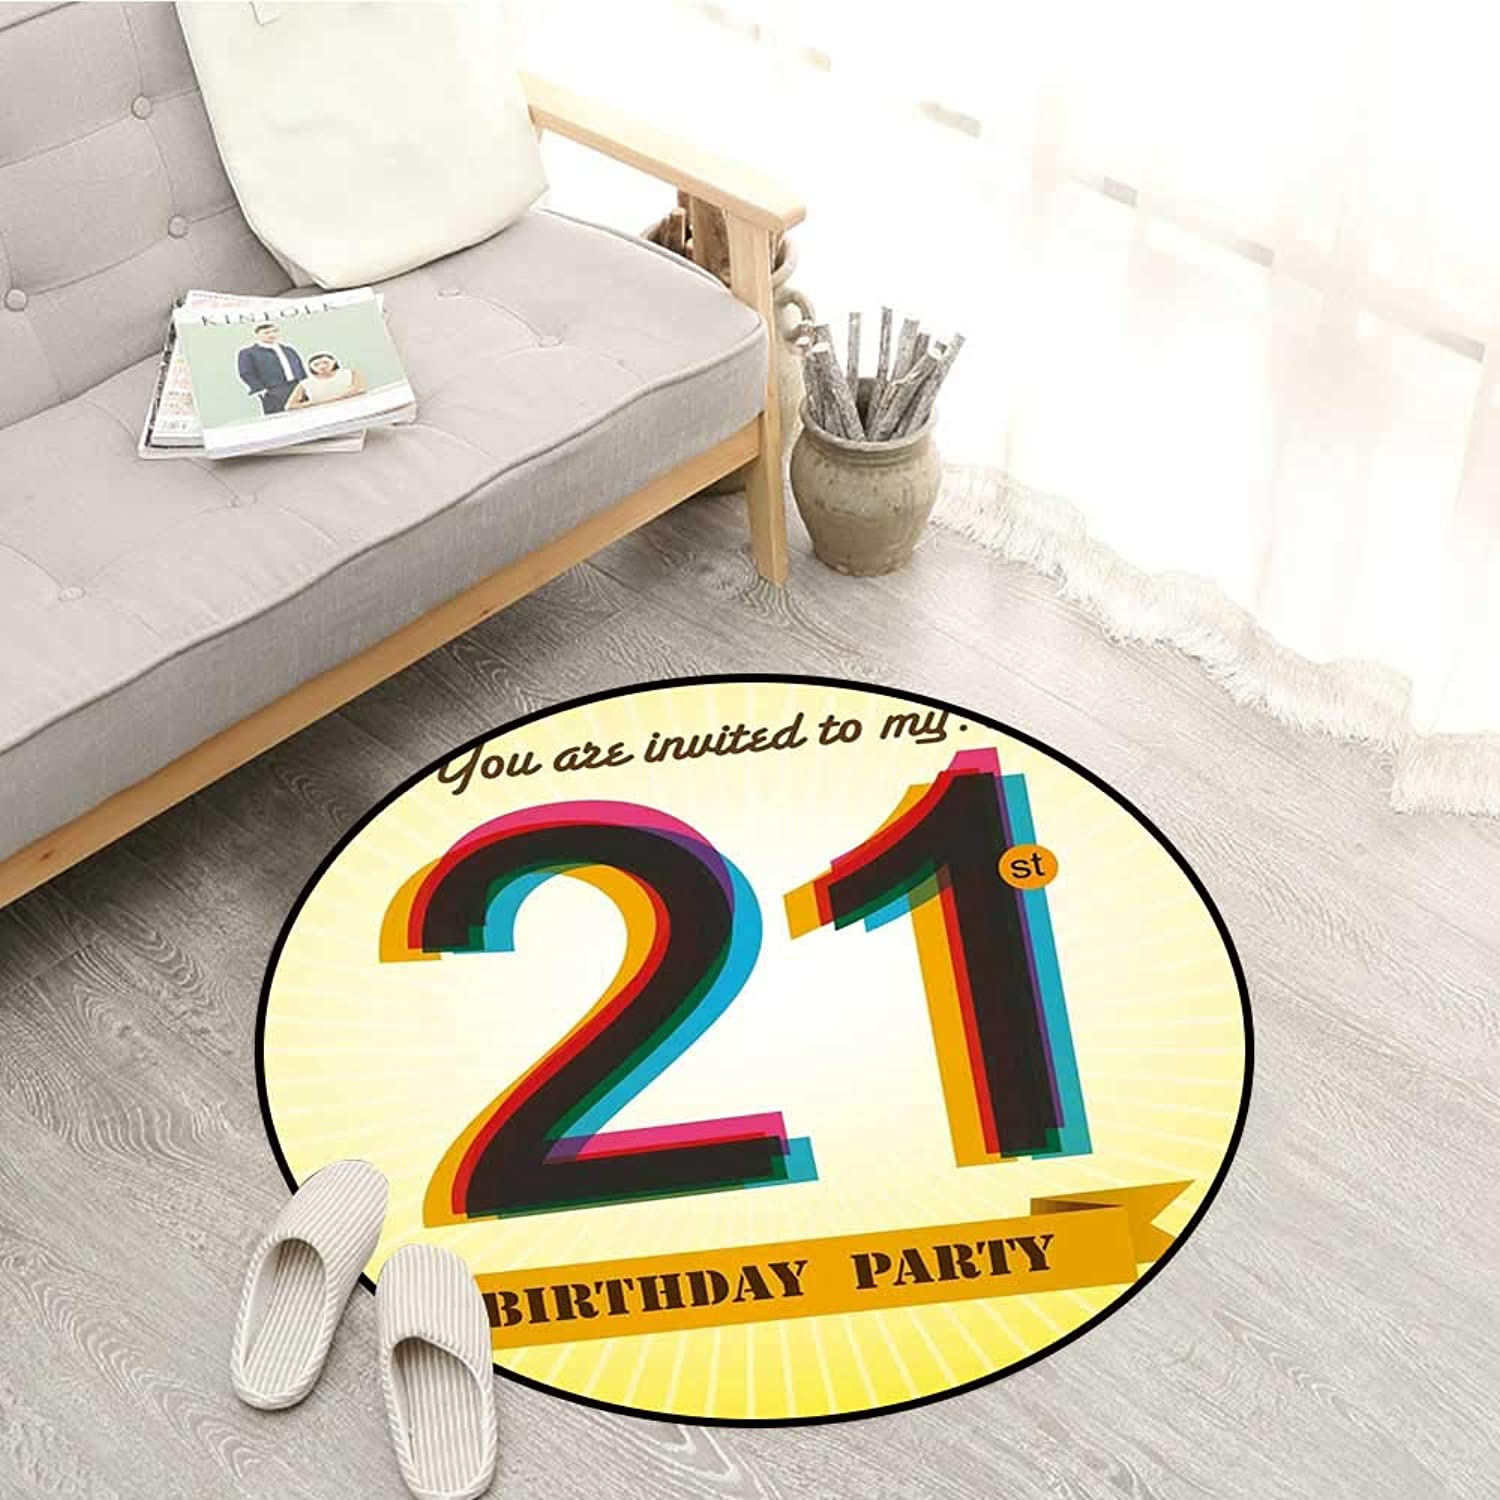 21st Birthday Non-Slip Rugs Invitation to an Amazing Birthday Party on a golden colord Backdrop Image Sofa Coffee Table Mat 3'11  Multicolor